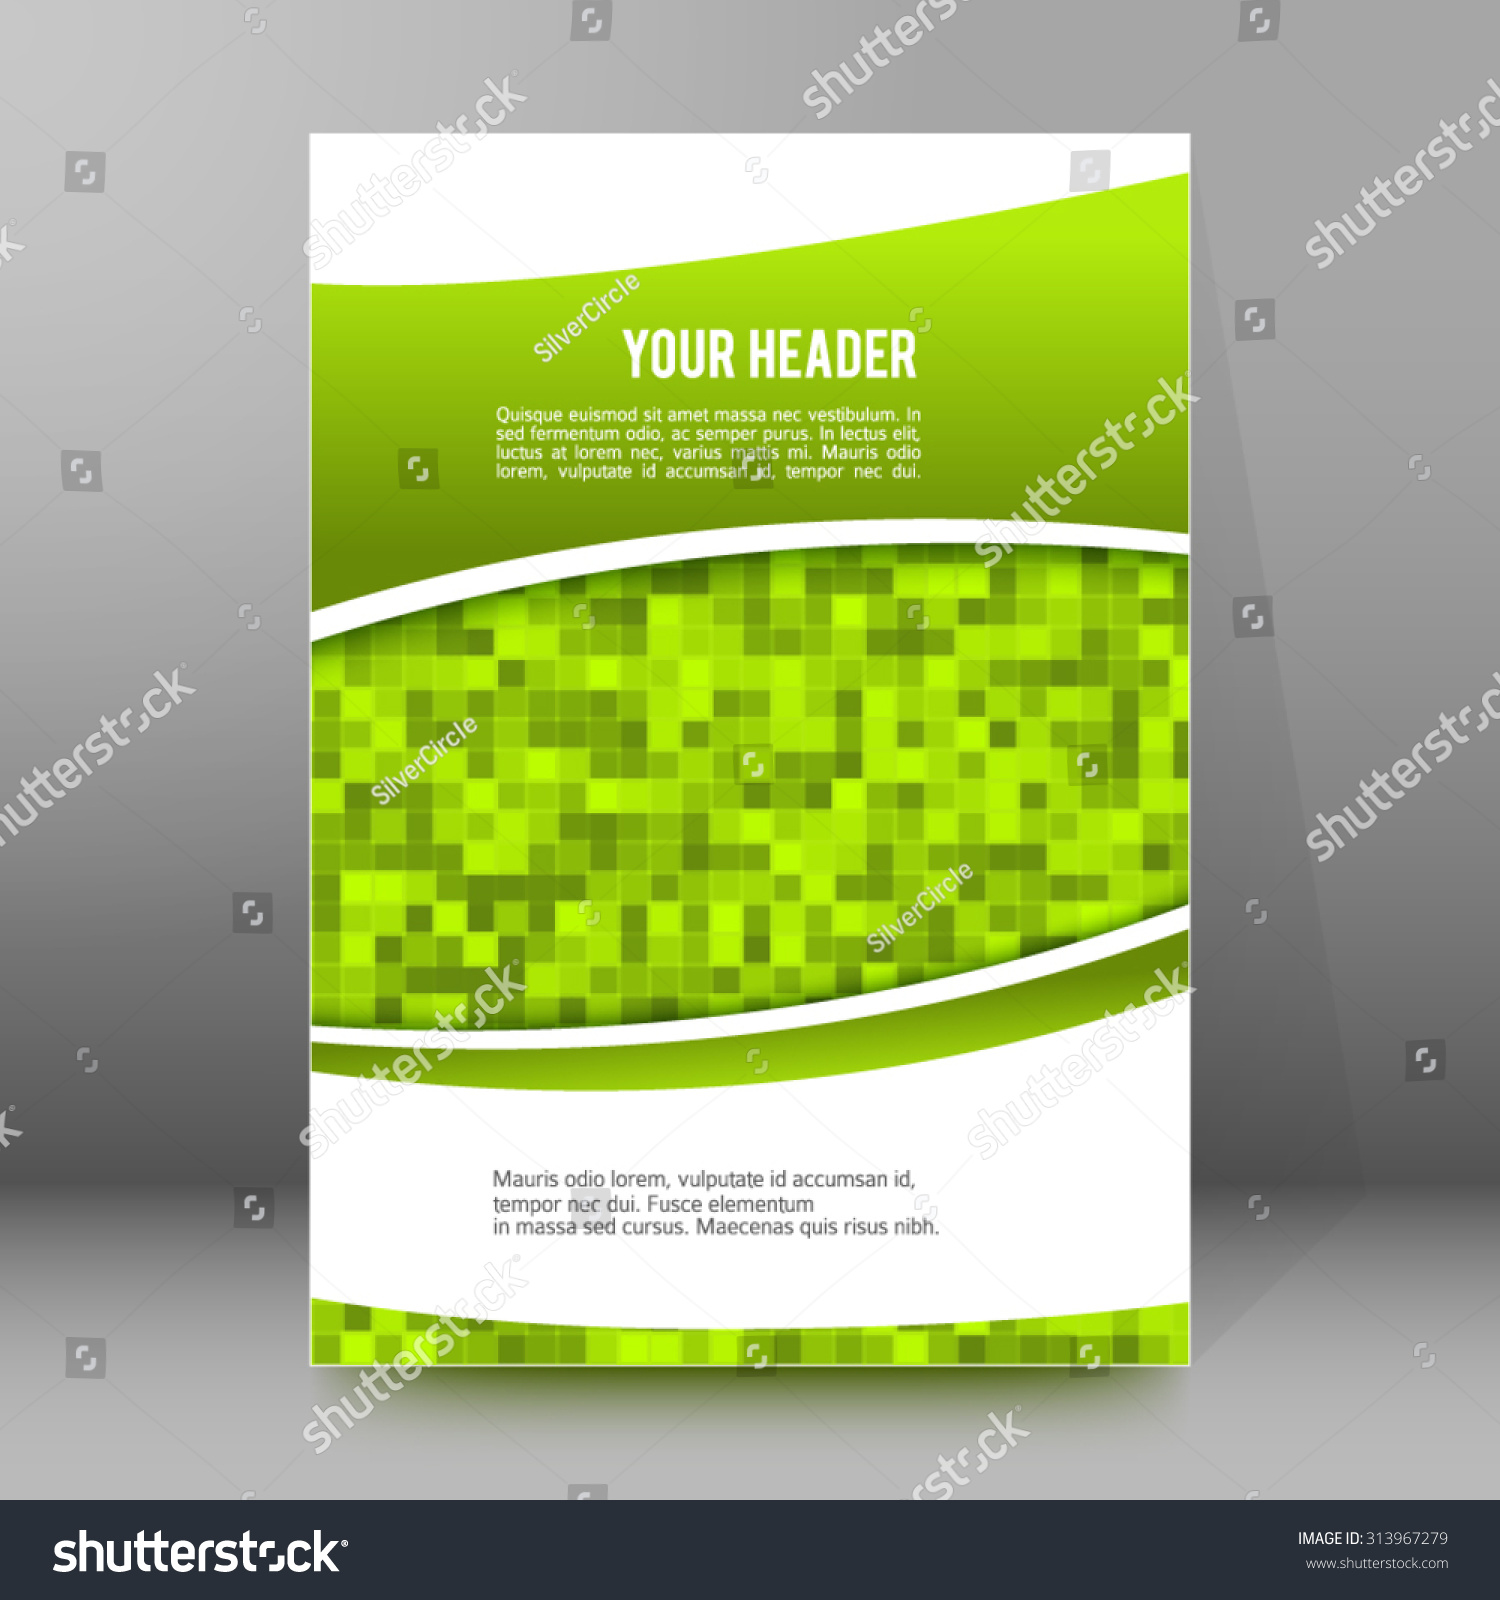 advertisement flyer design elements mesh green stock vector advertisement flyer design elements mesh green background elegant graphic mosaic bright light vector